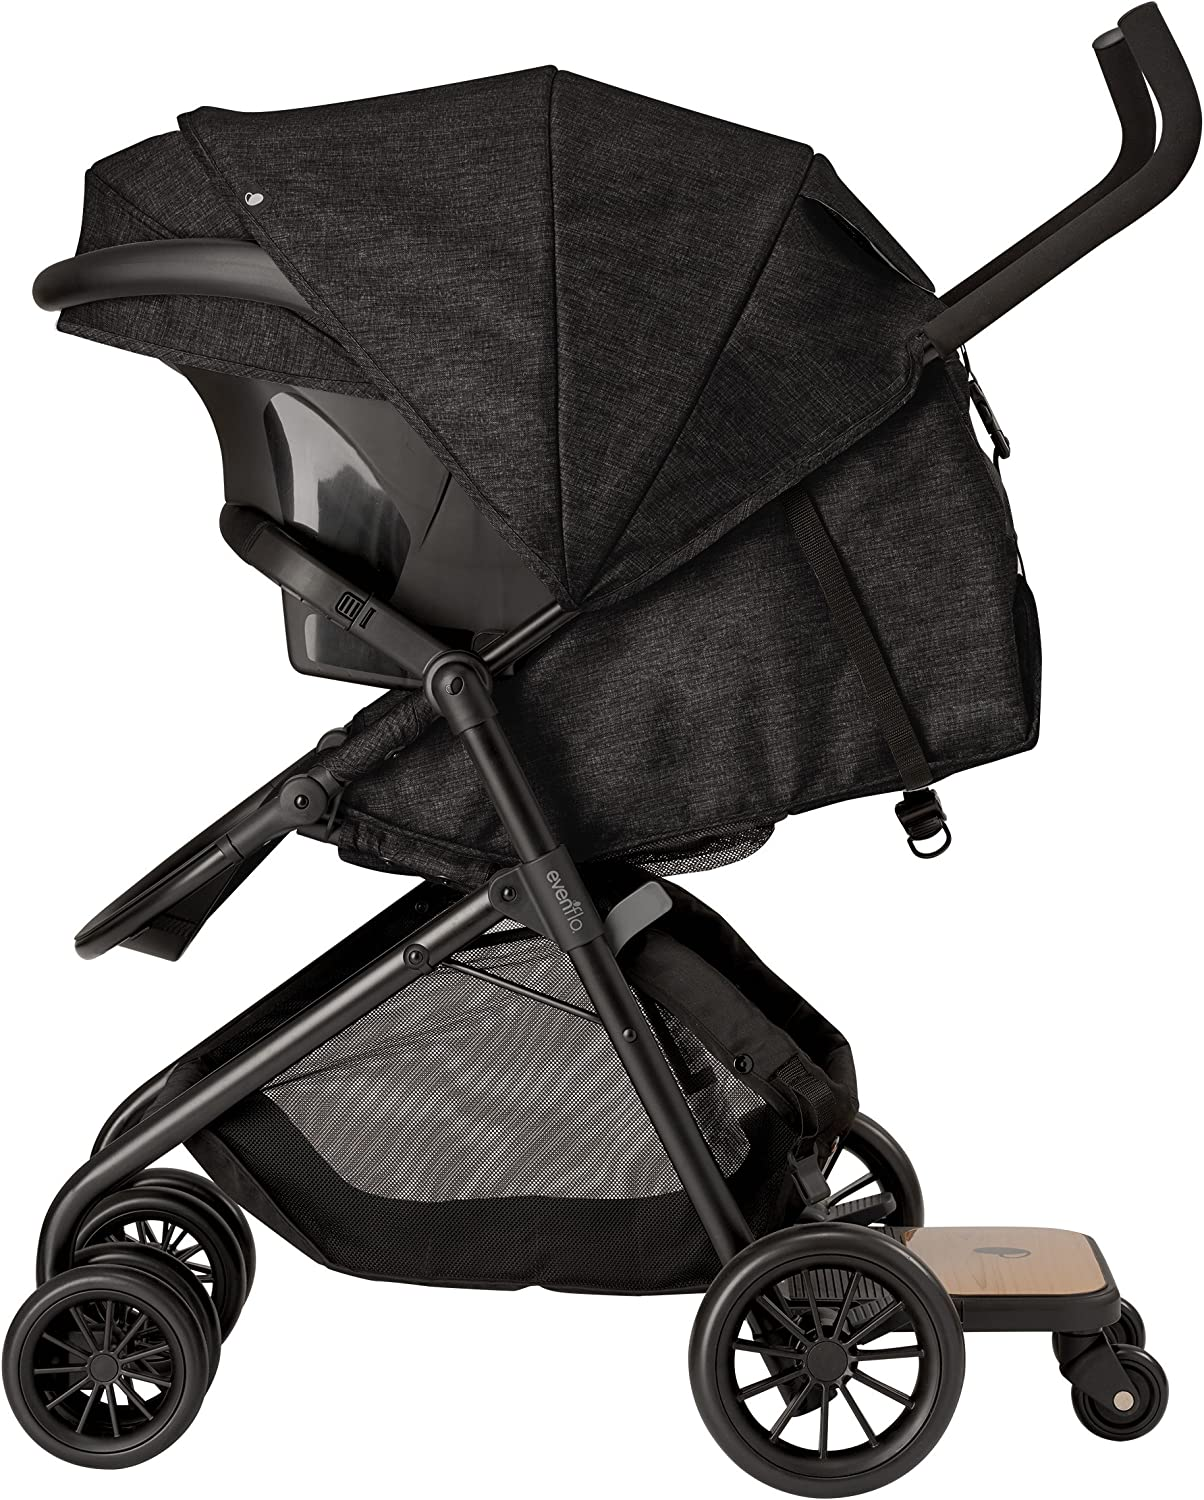 Charcoal Grey Evenflo Sibby 2 Travel System with LiteMax Infant Car Seat Large